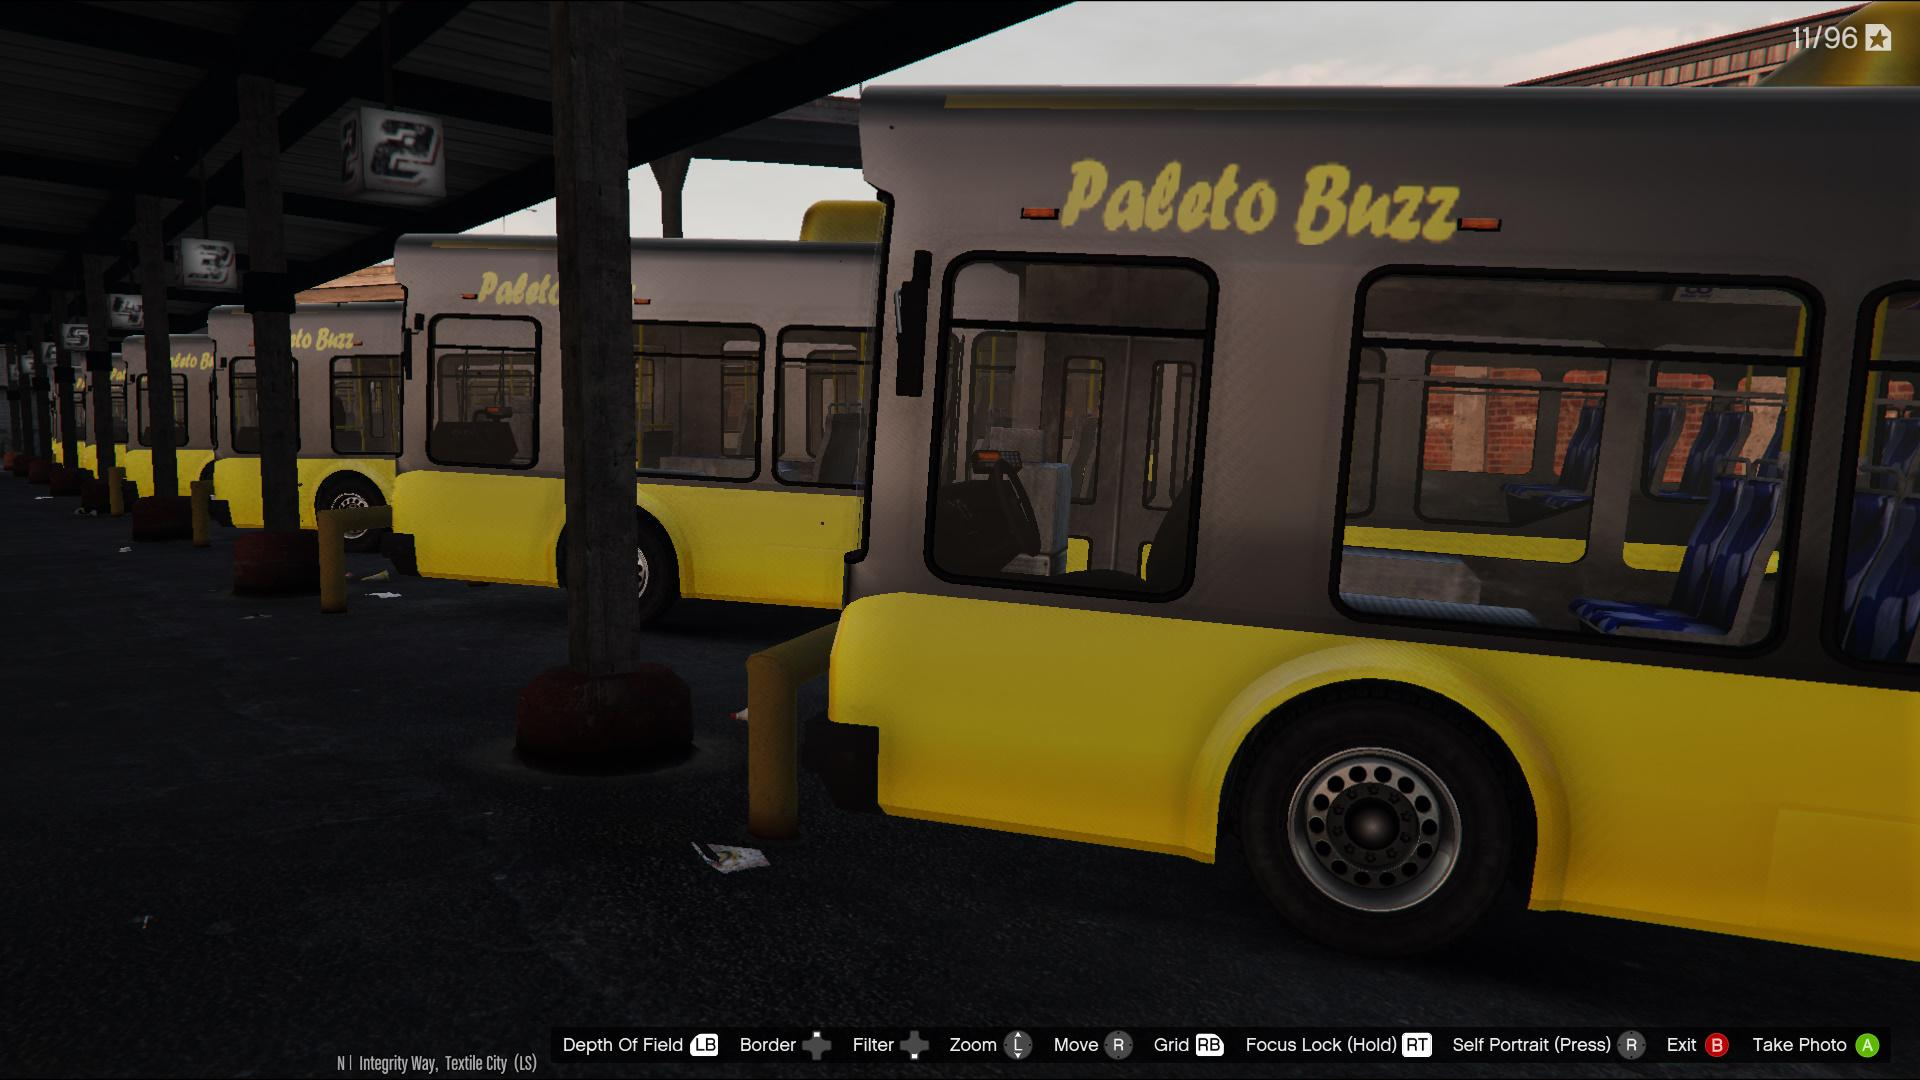 paleto buzz bus texture gta5. Black Bedroom Furniture Sets. Home Design Ideas